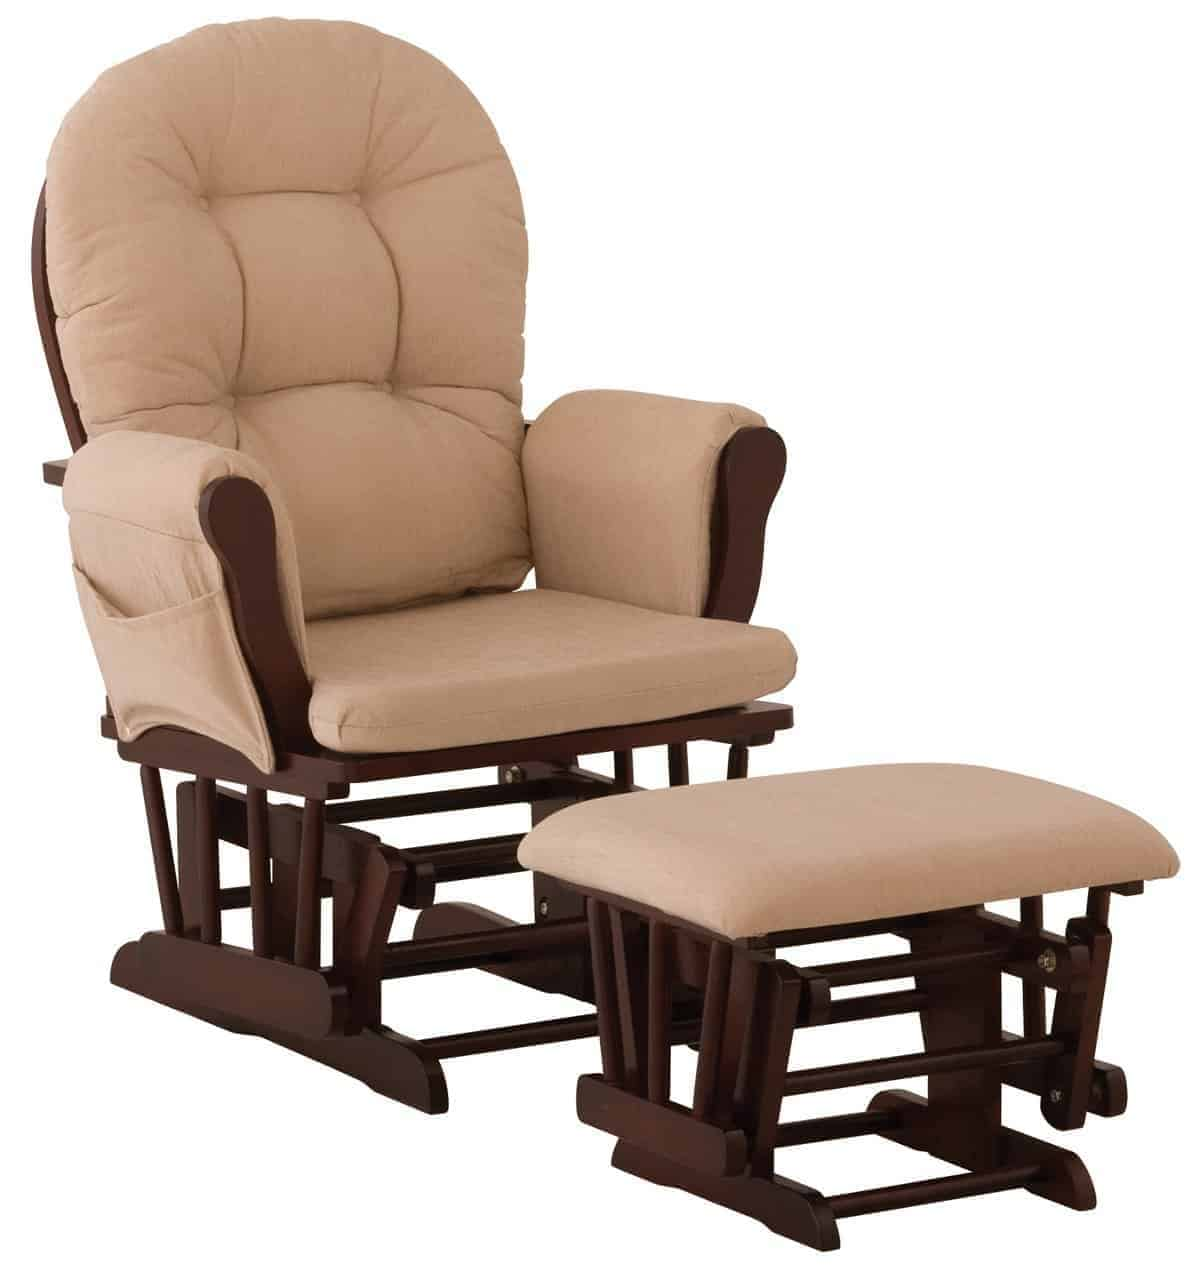 comfortable rocking chair belmont barber parts best chairs for the nursery